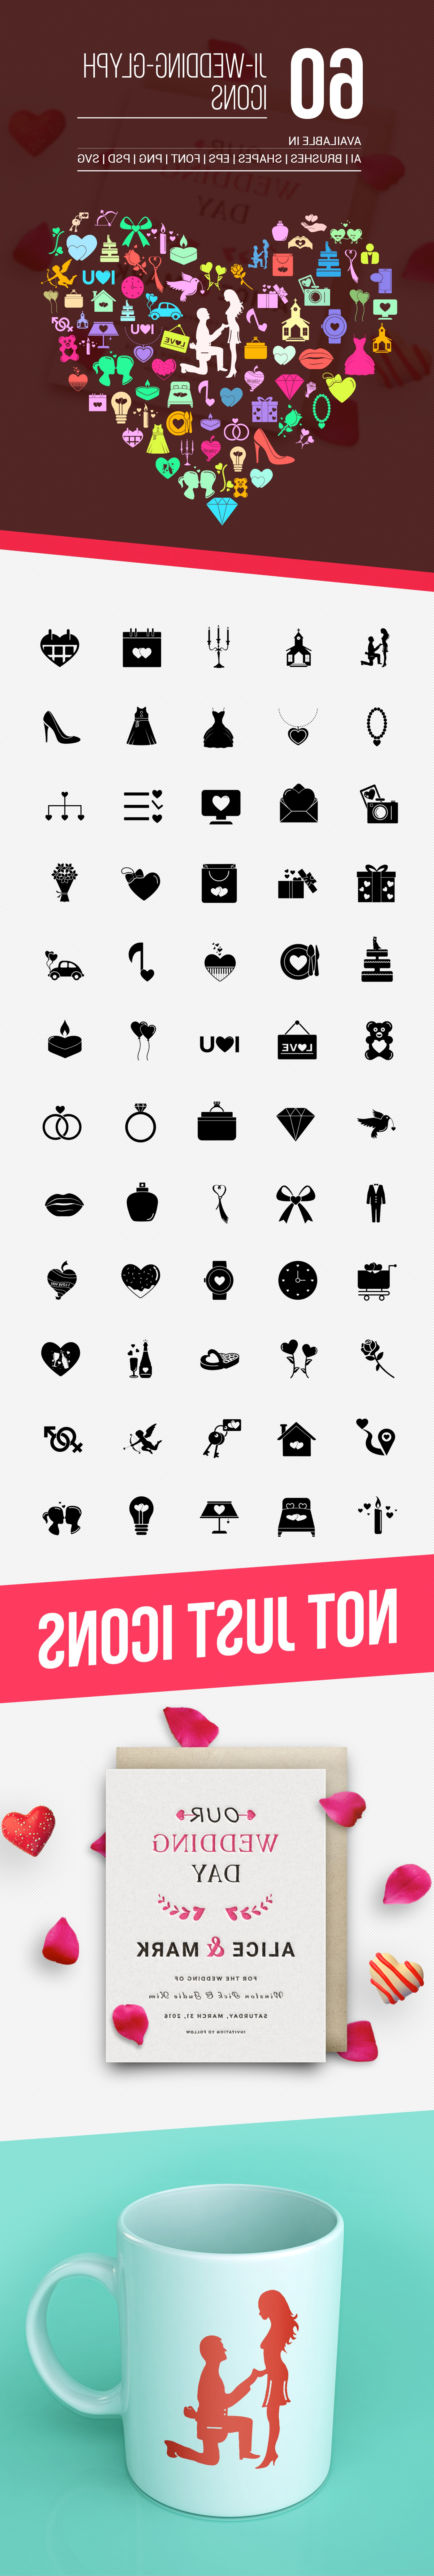 I Love You Mark Vector: Wedding And Love Vector Icons